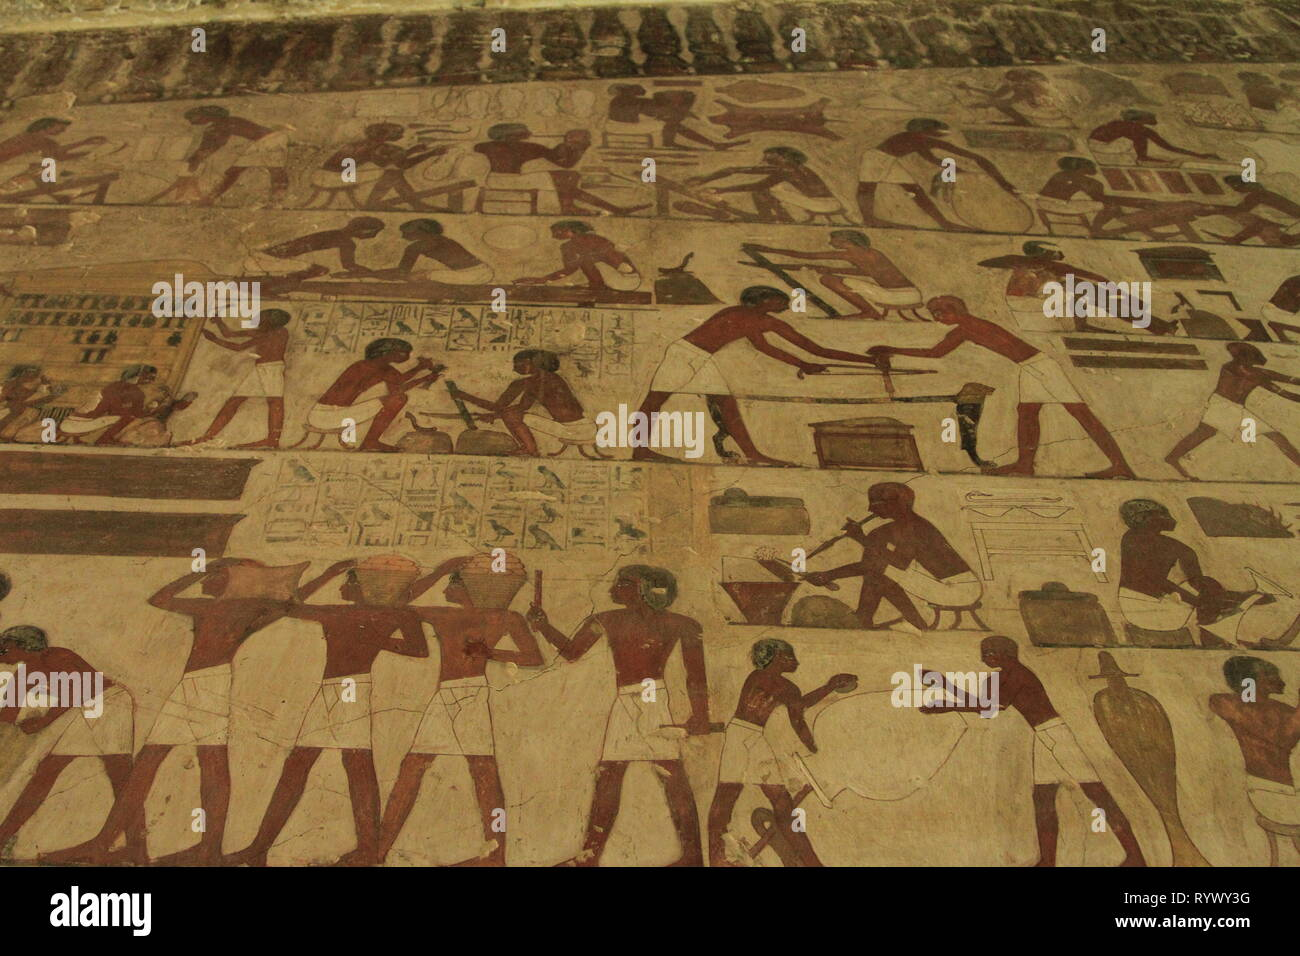 Painting showing everyday scenes, such as carpentry, woodworking, hauling grain, in Ancient Egypt, Rekhmire's tomb, Deir el-Medina, West Bank, Luxor - Stock Image